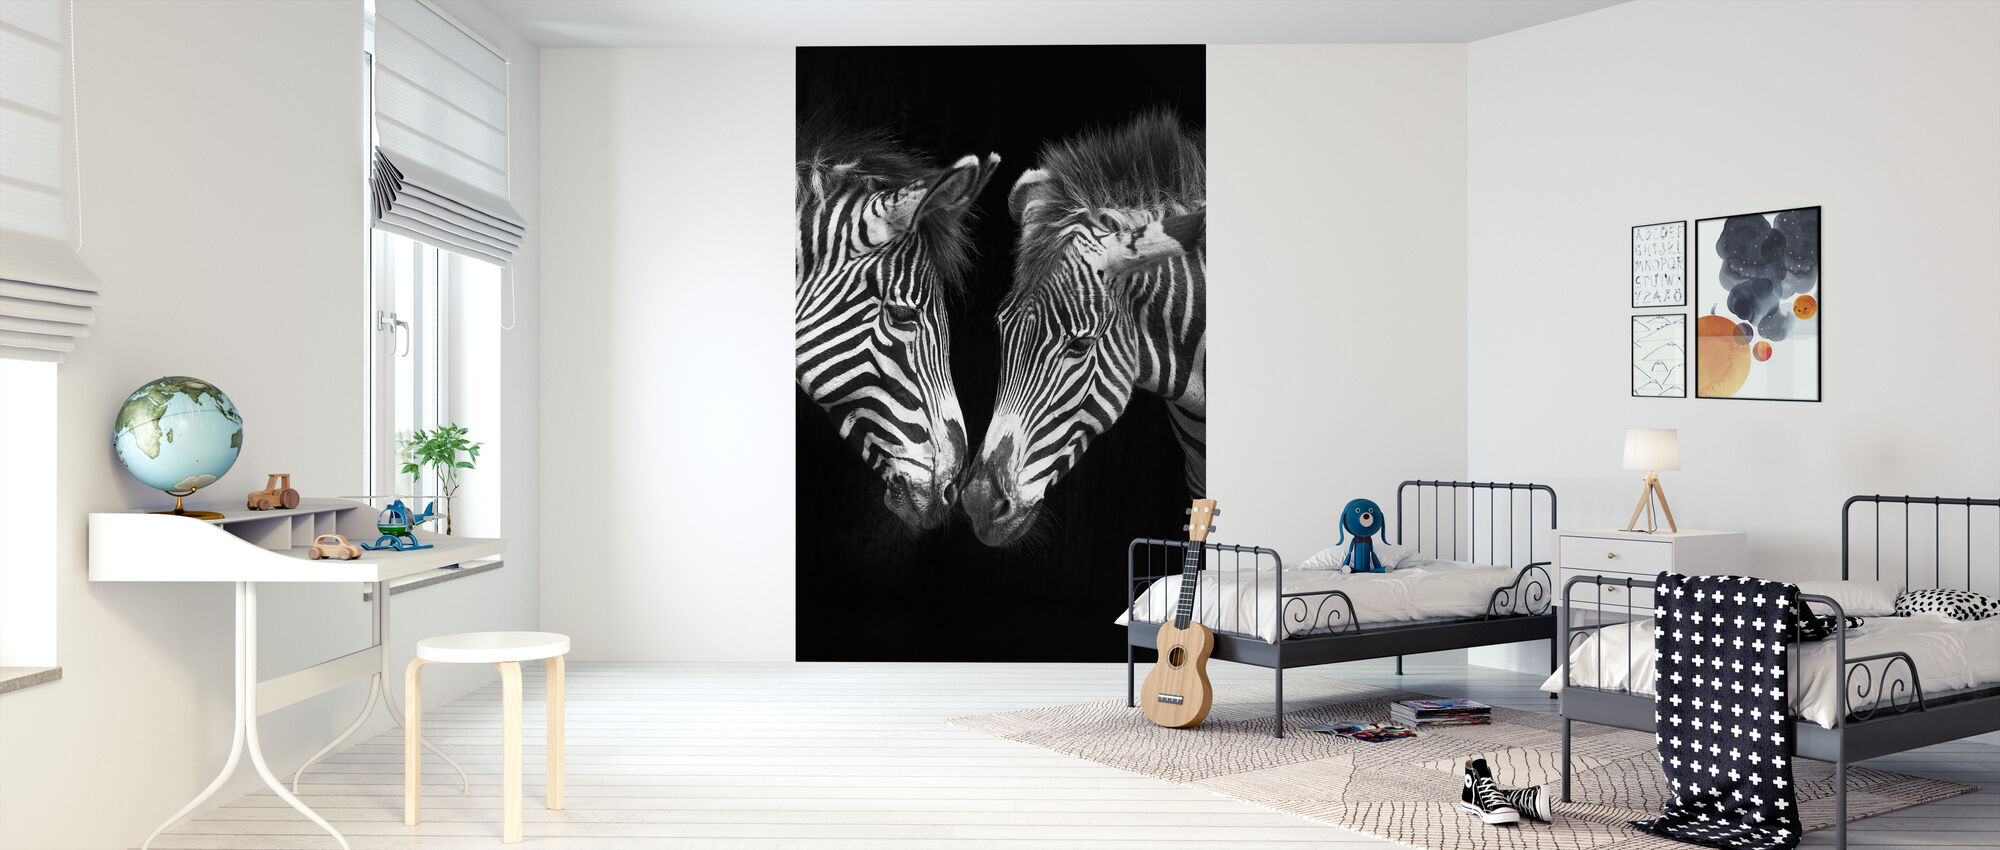 The Nearness of You - Wallpaper - Kids Room